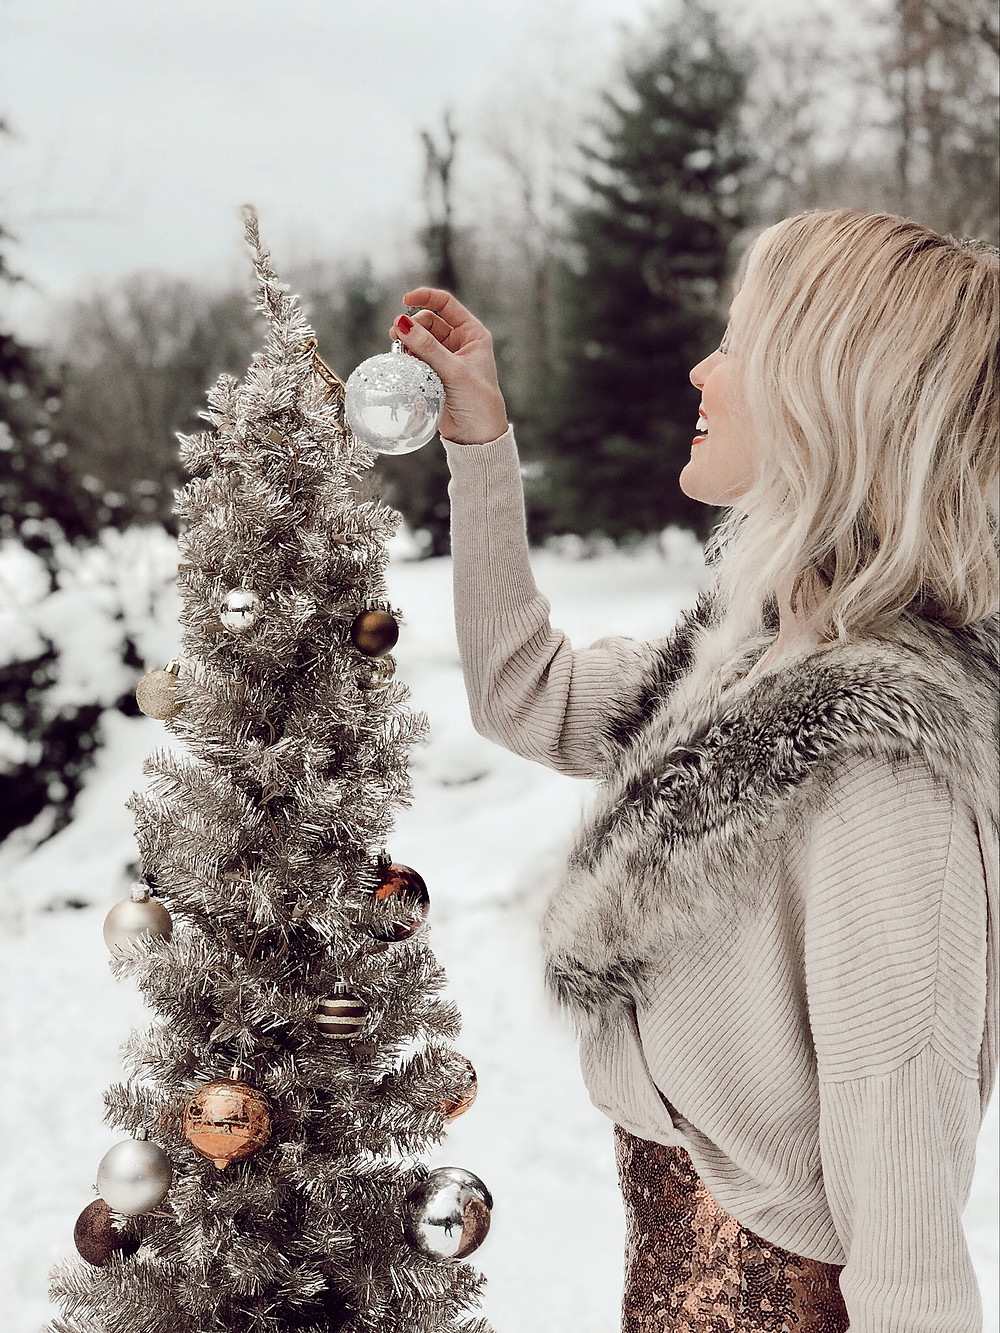 Woman wearing sequin skirt and fur collared sweater stands in snow while decorating a rose gold metallic Christmas tree.